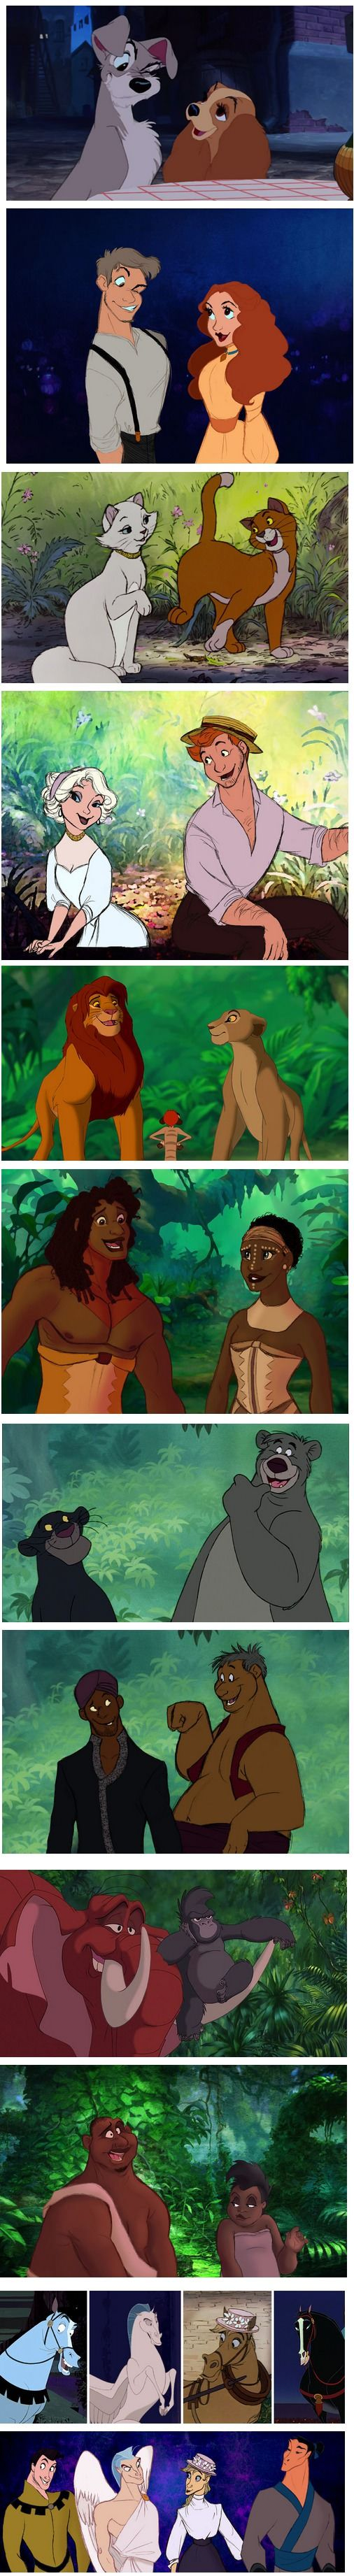 Charming Disney animals as humans